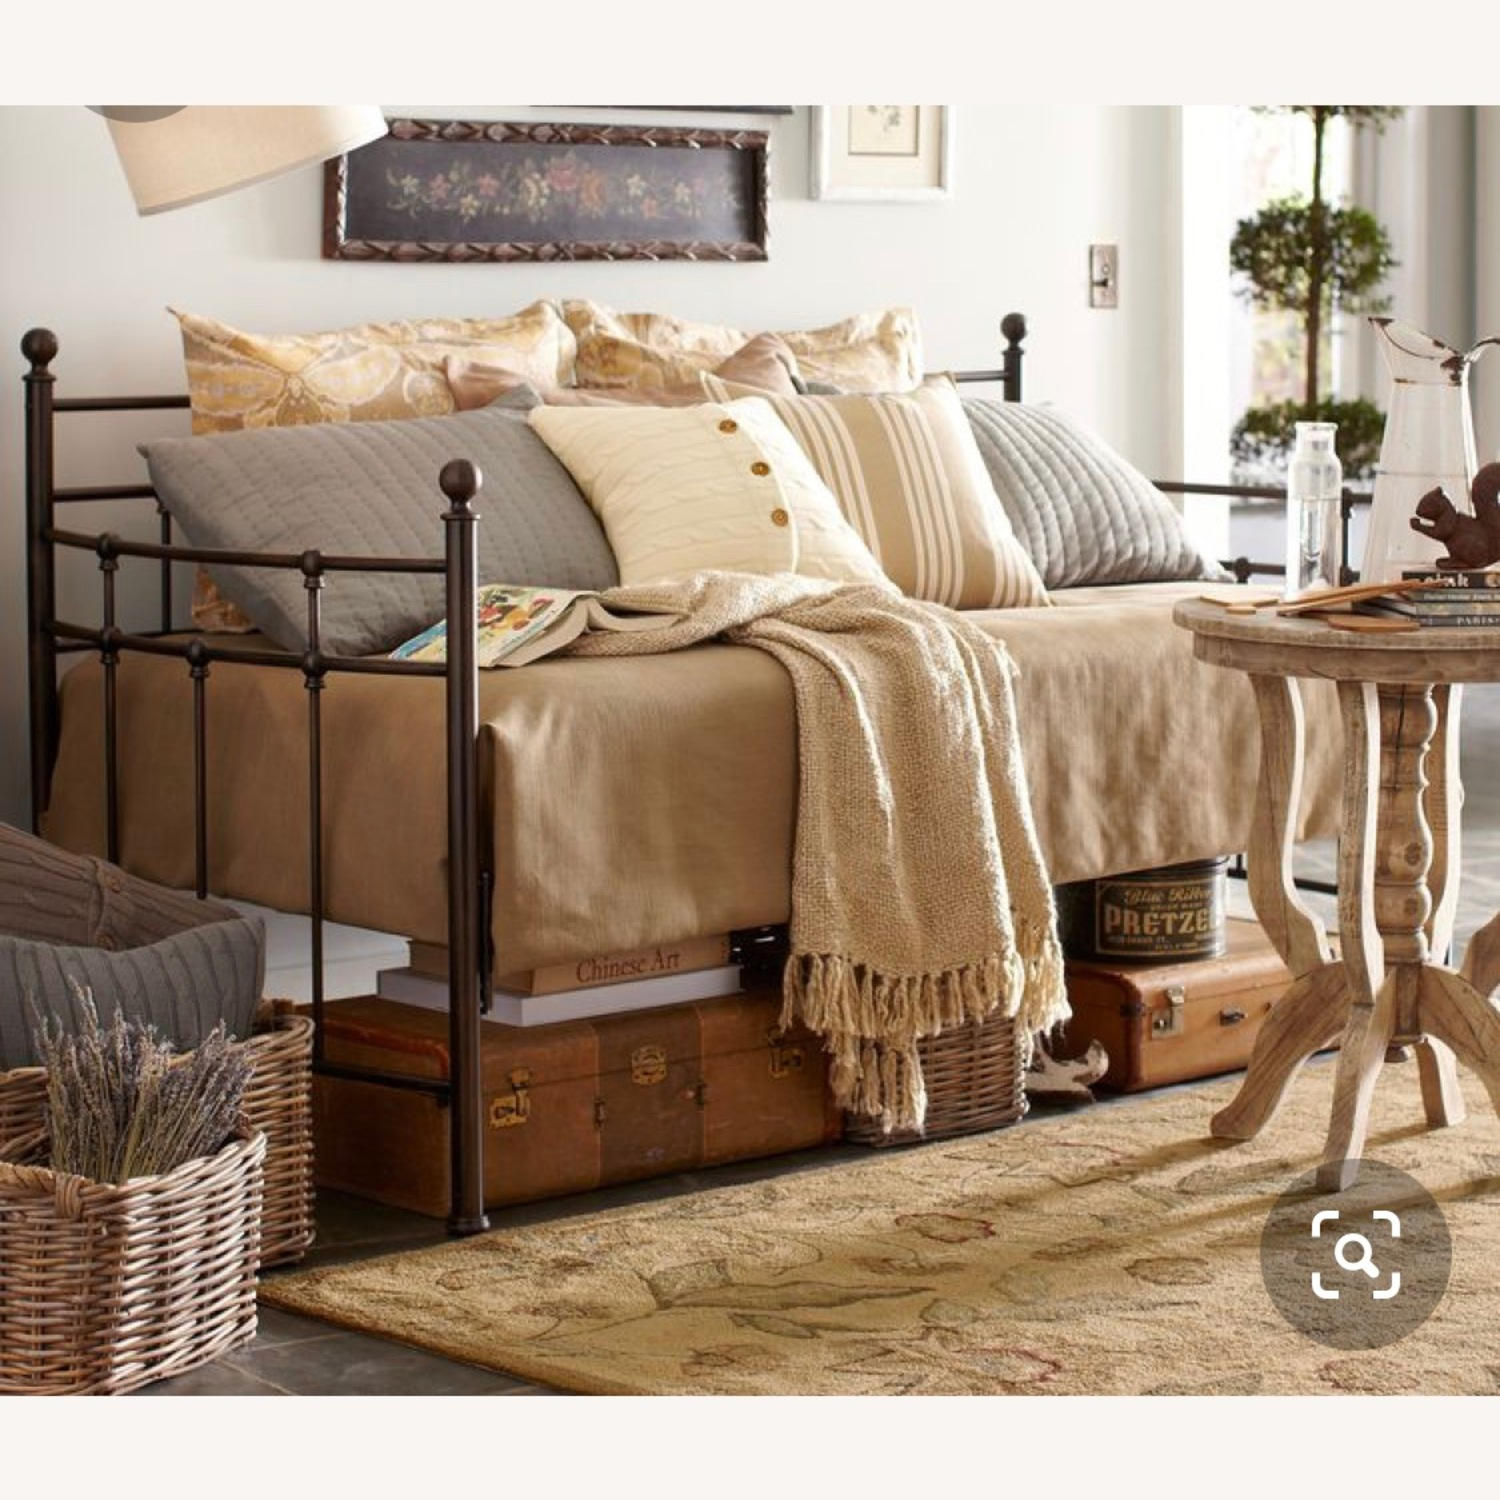 Birch Lane Regis Daybed - image-0